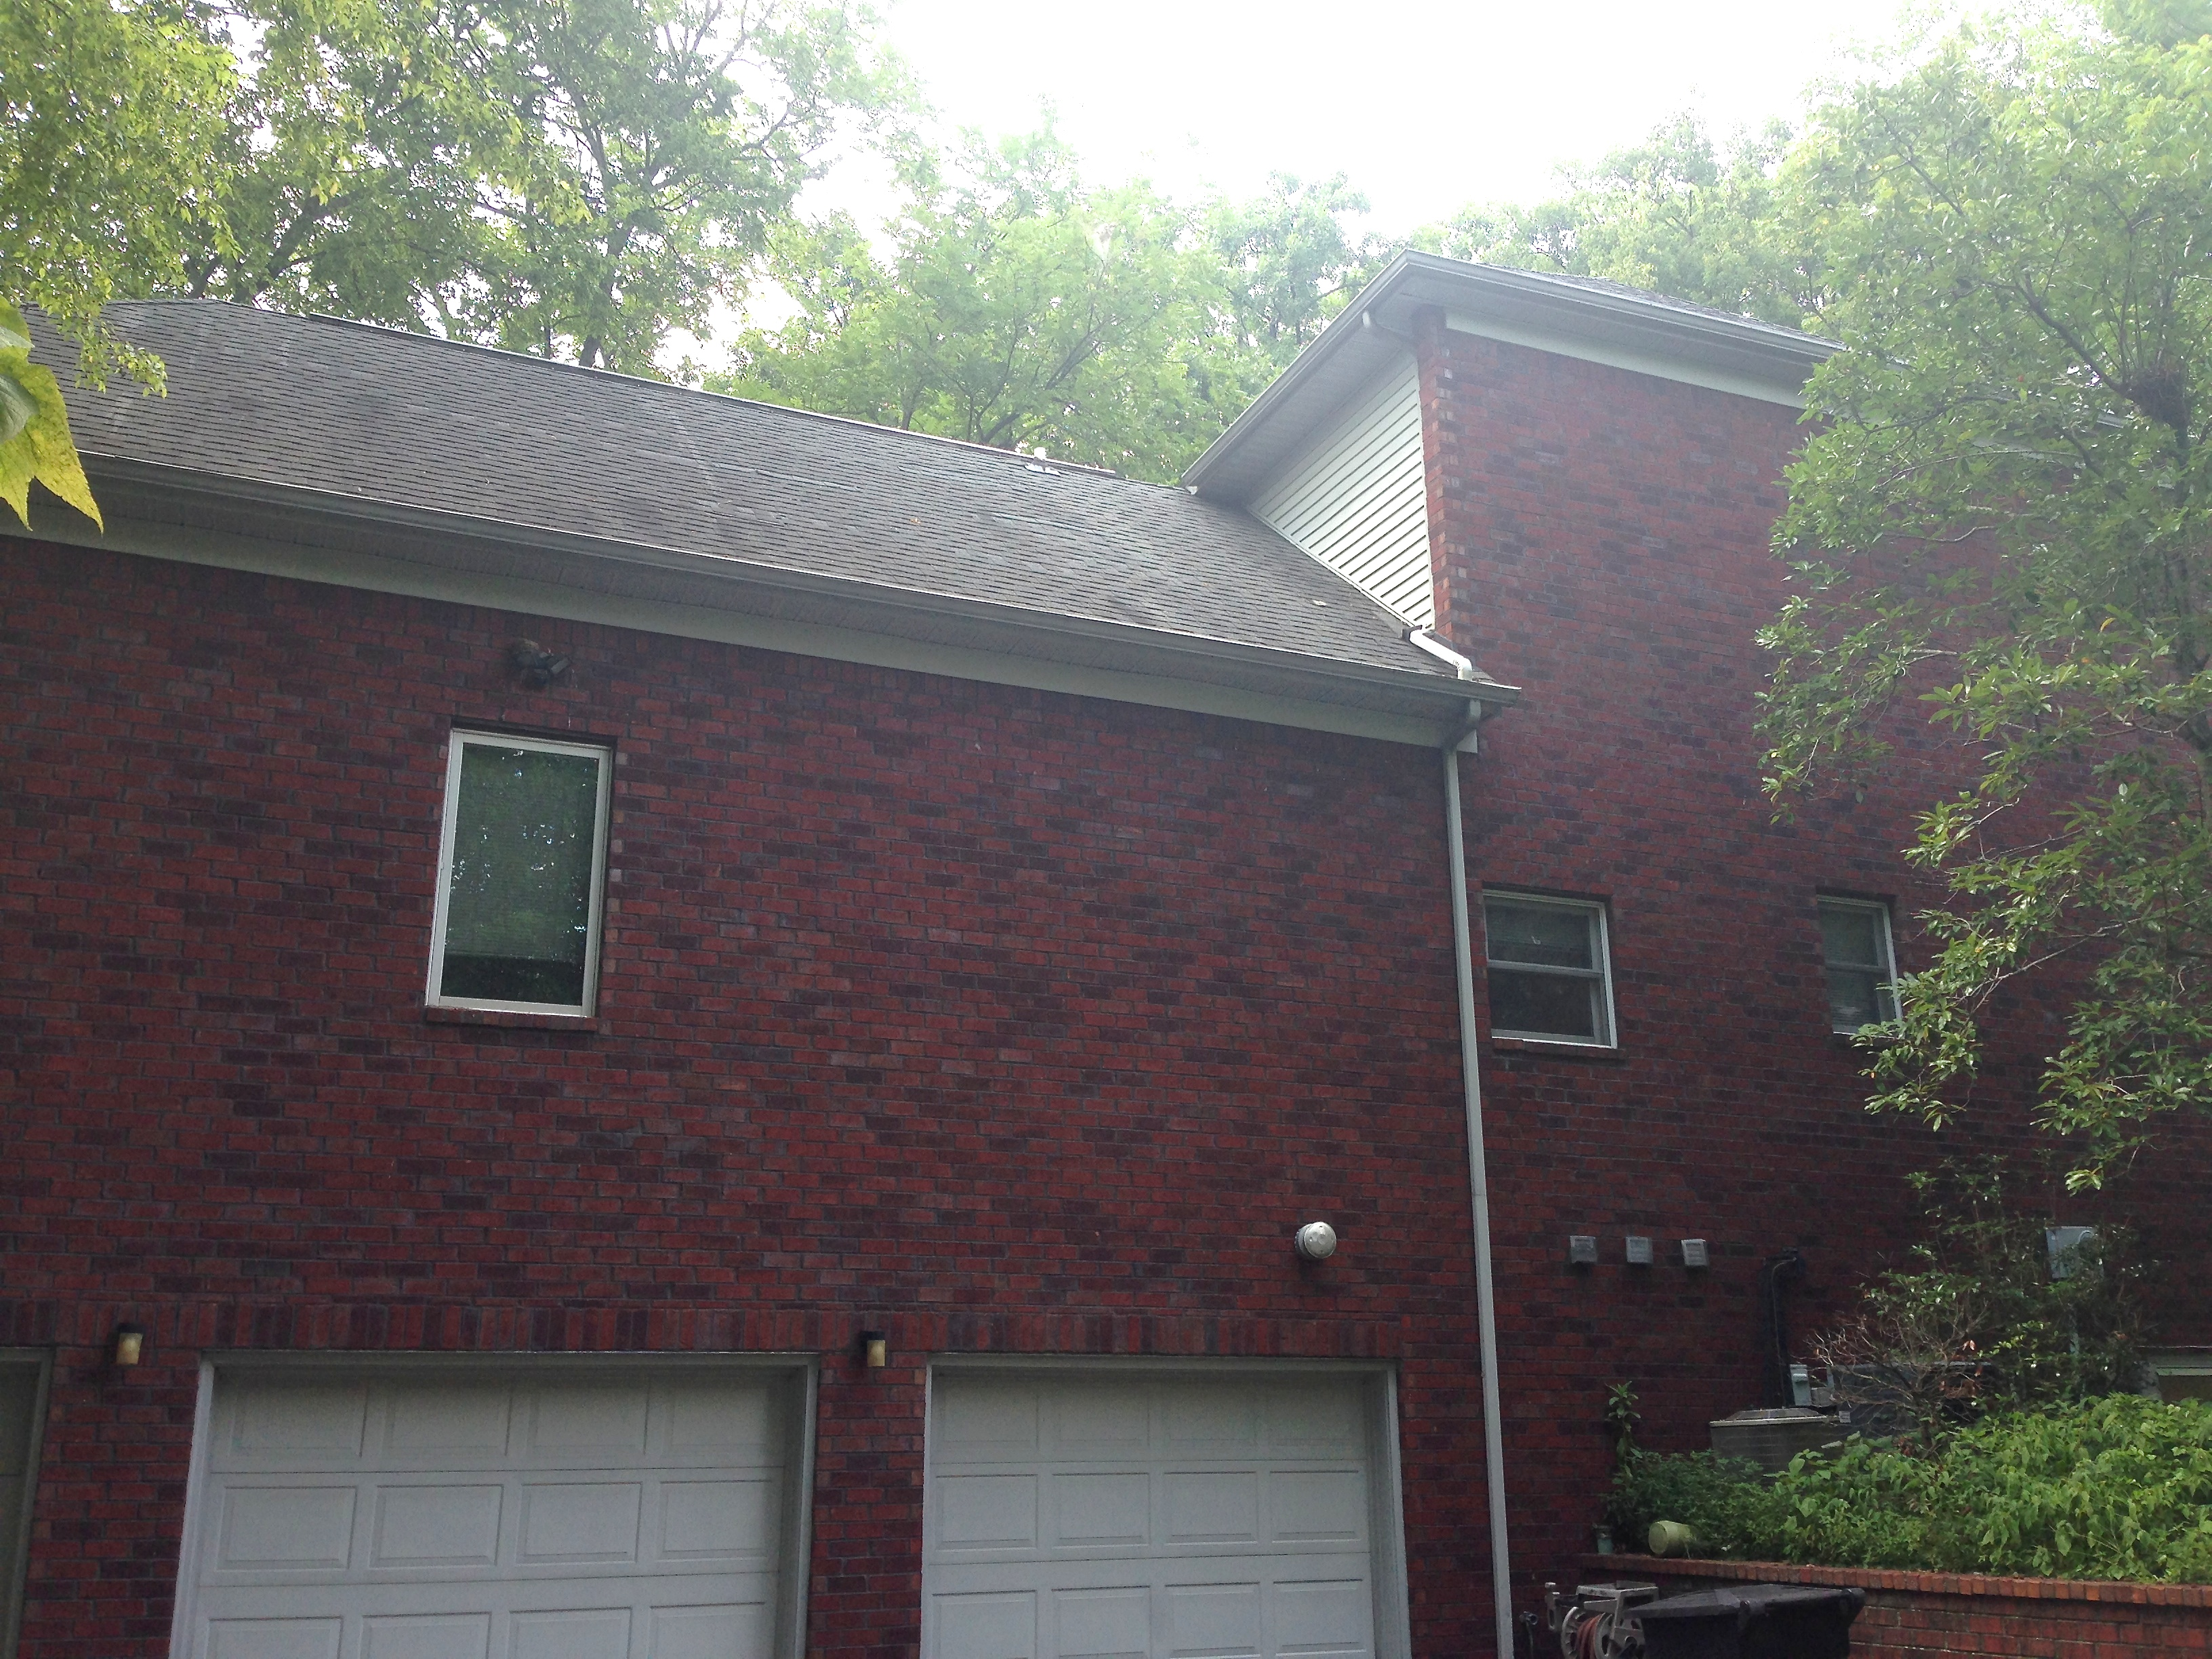 The 25 year old architectural shingles had aged to the point it was to replace.